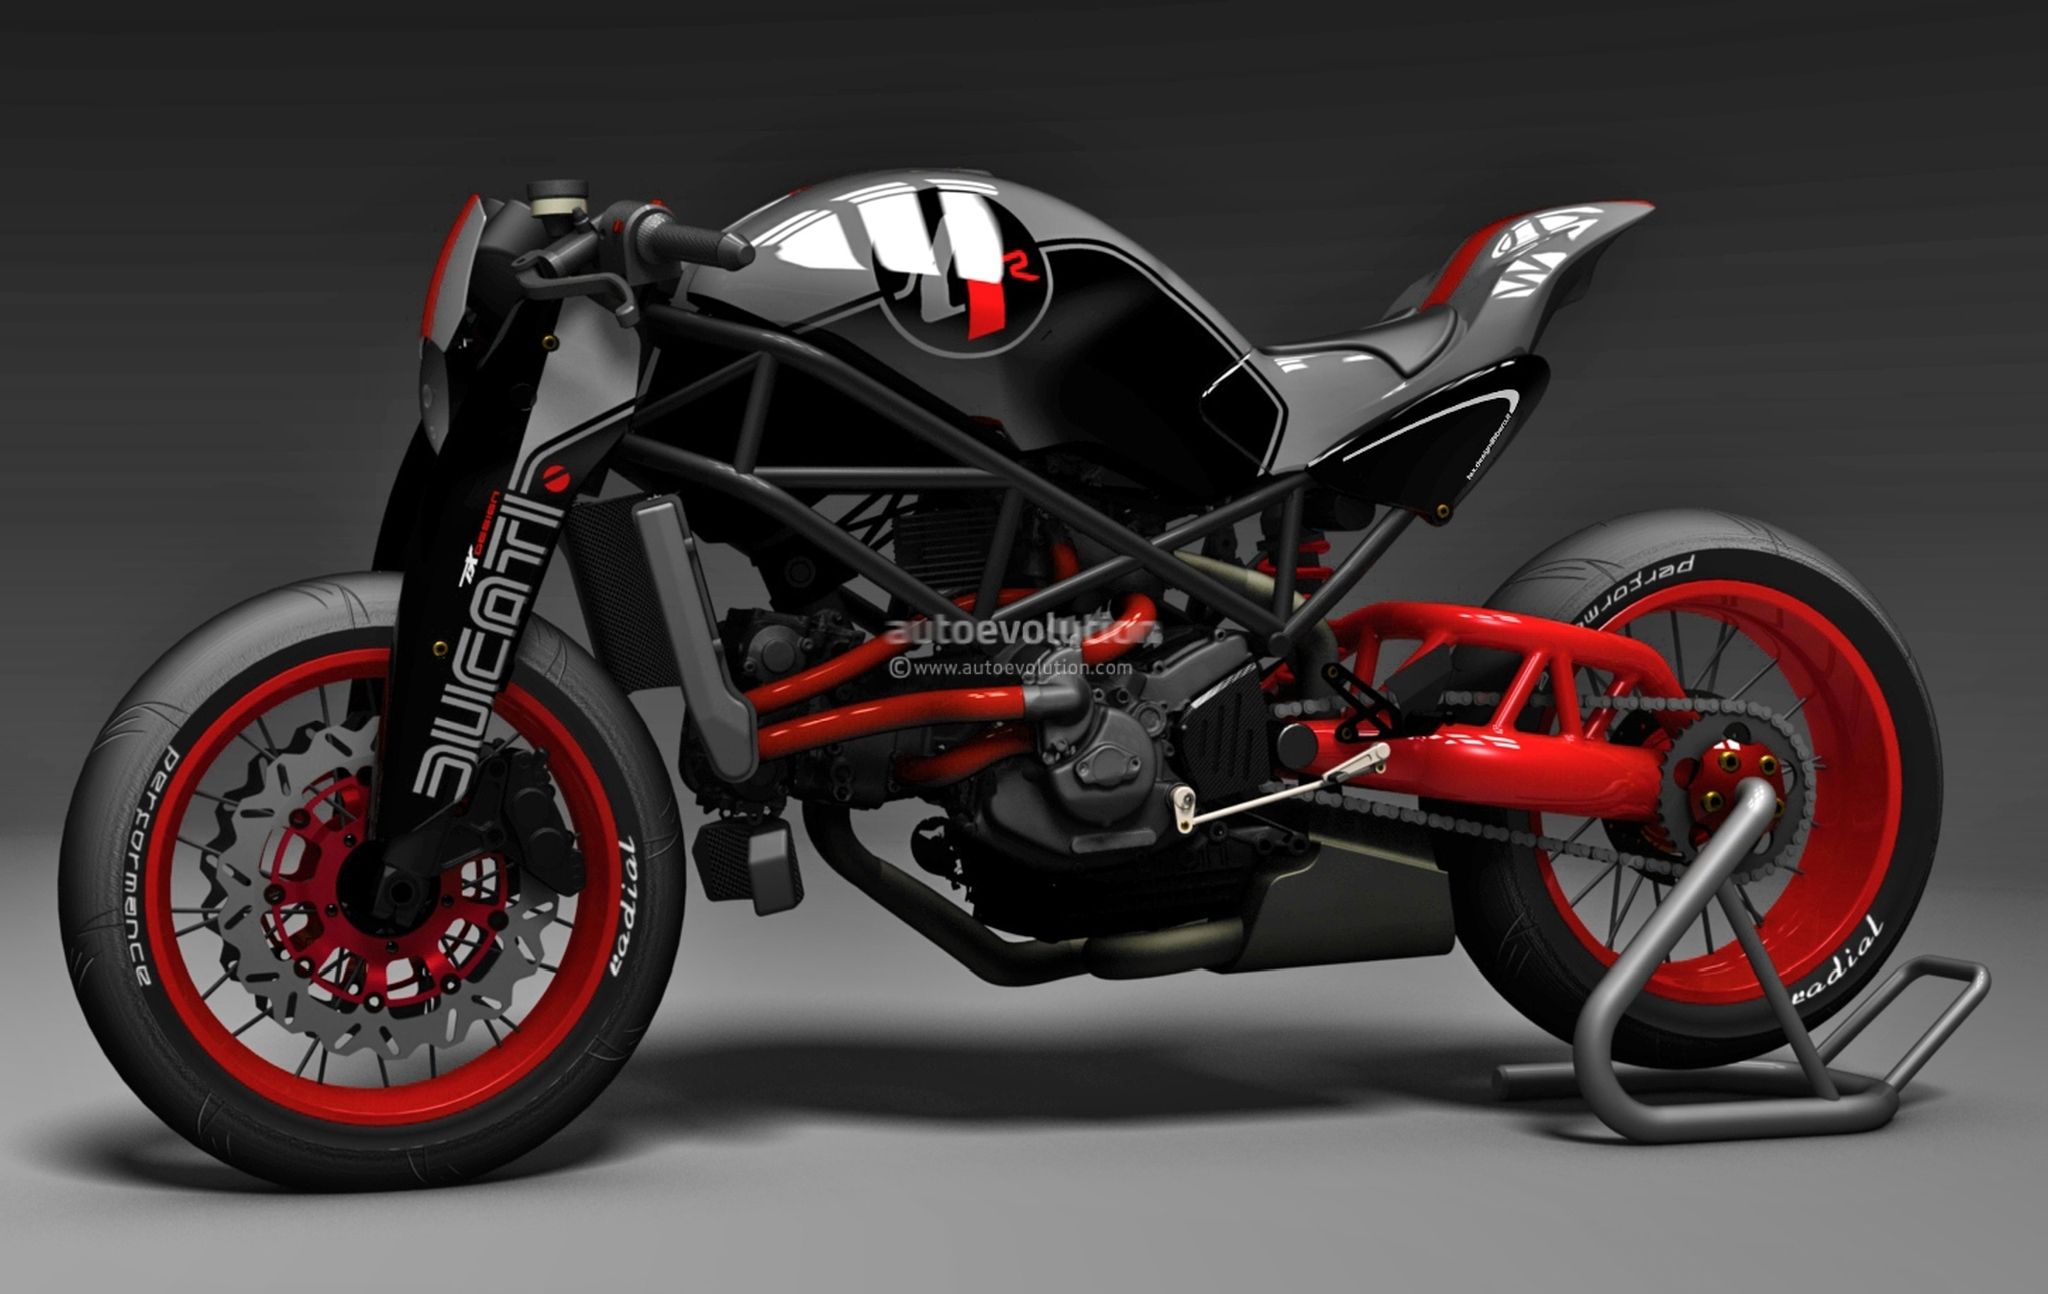 Bmw Car And Bike Wallpaper Jaw Dropping Paolo Tesio Ducati Body Kits Available In